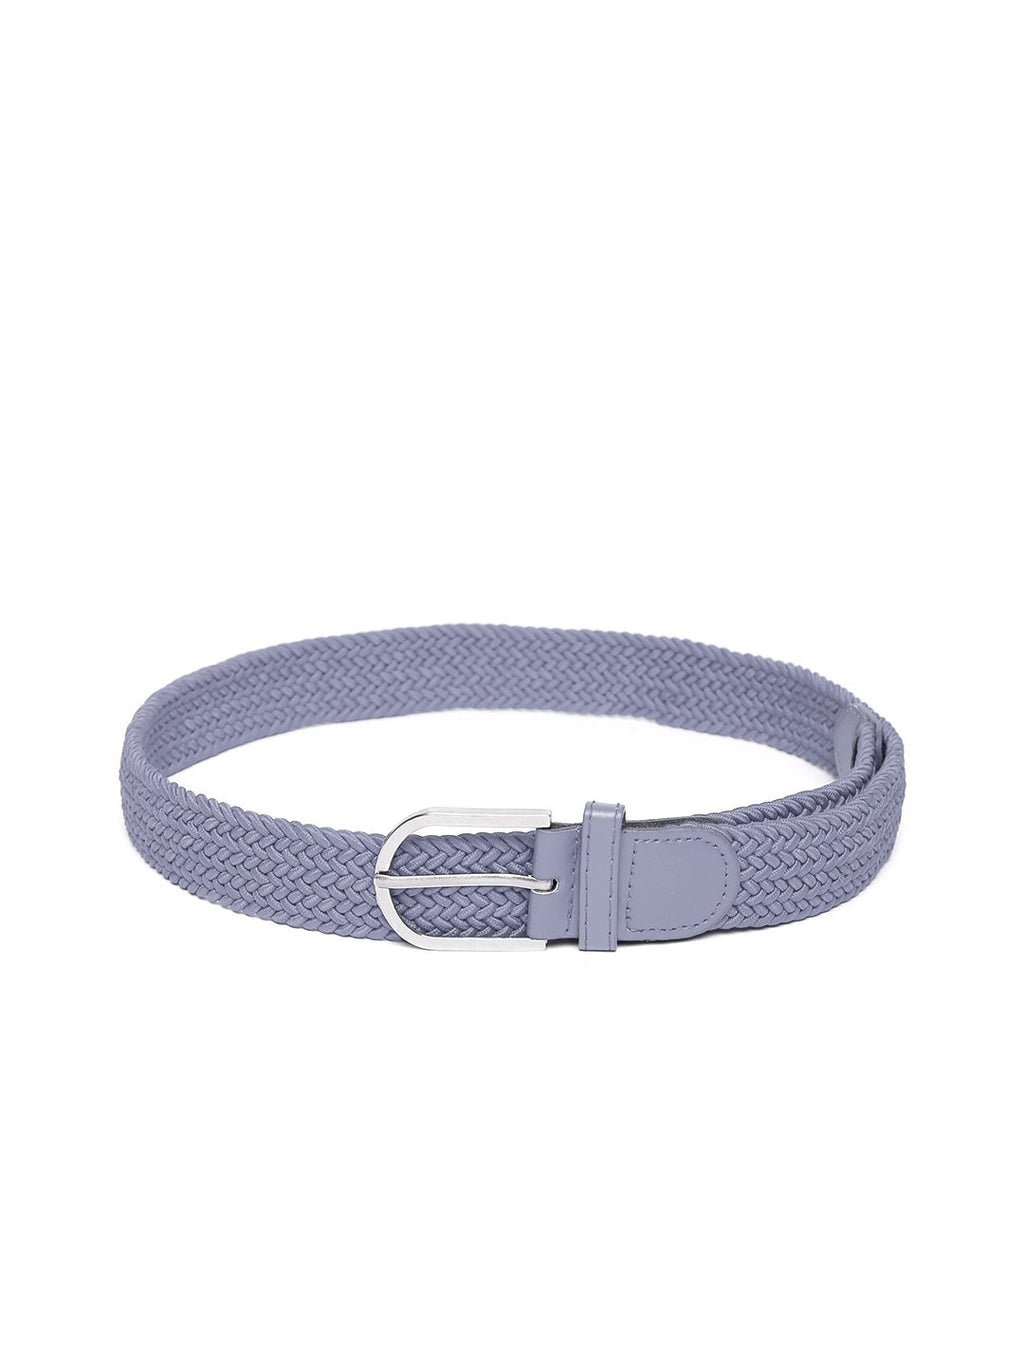 Lazy panda men grey nylon webbed belt